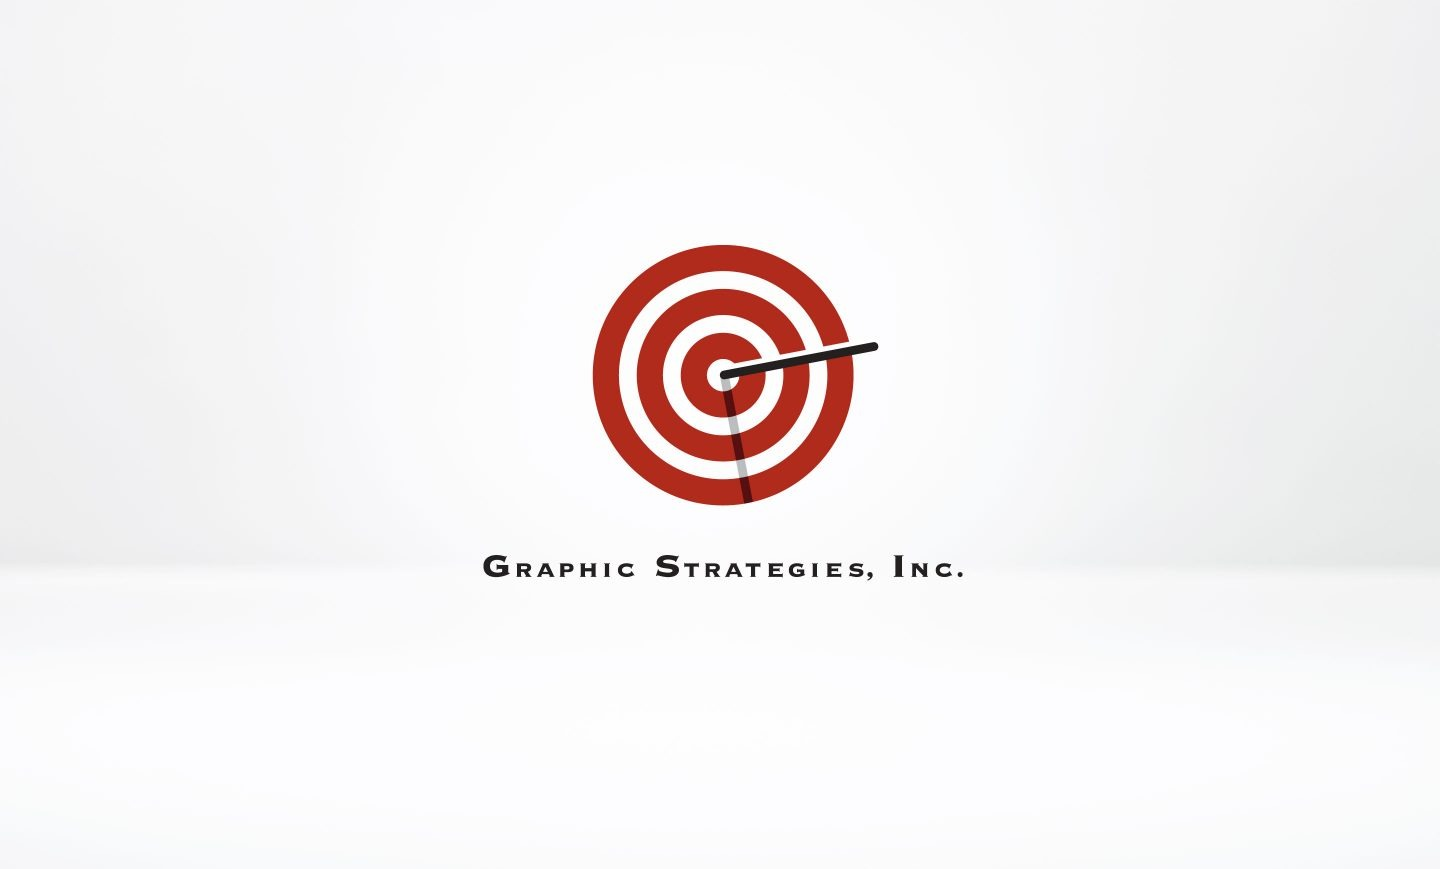 Graphic Strategies, Inc.